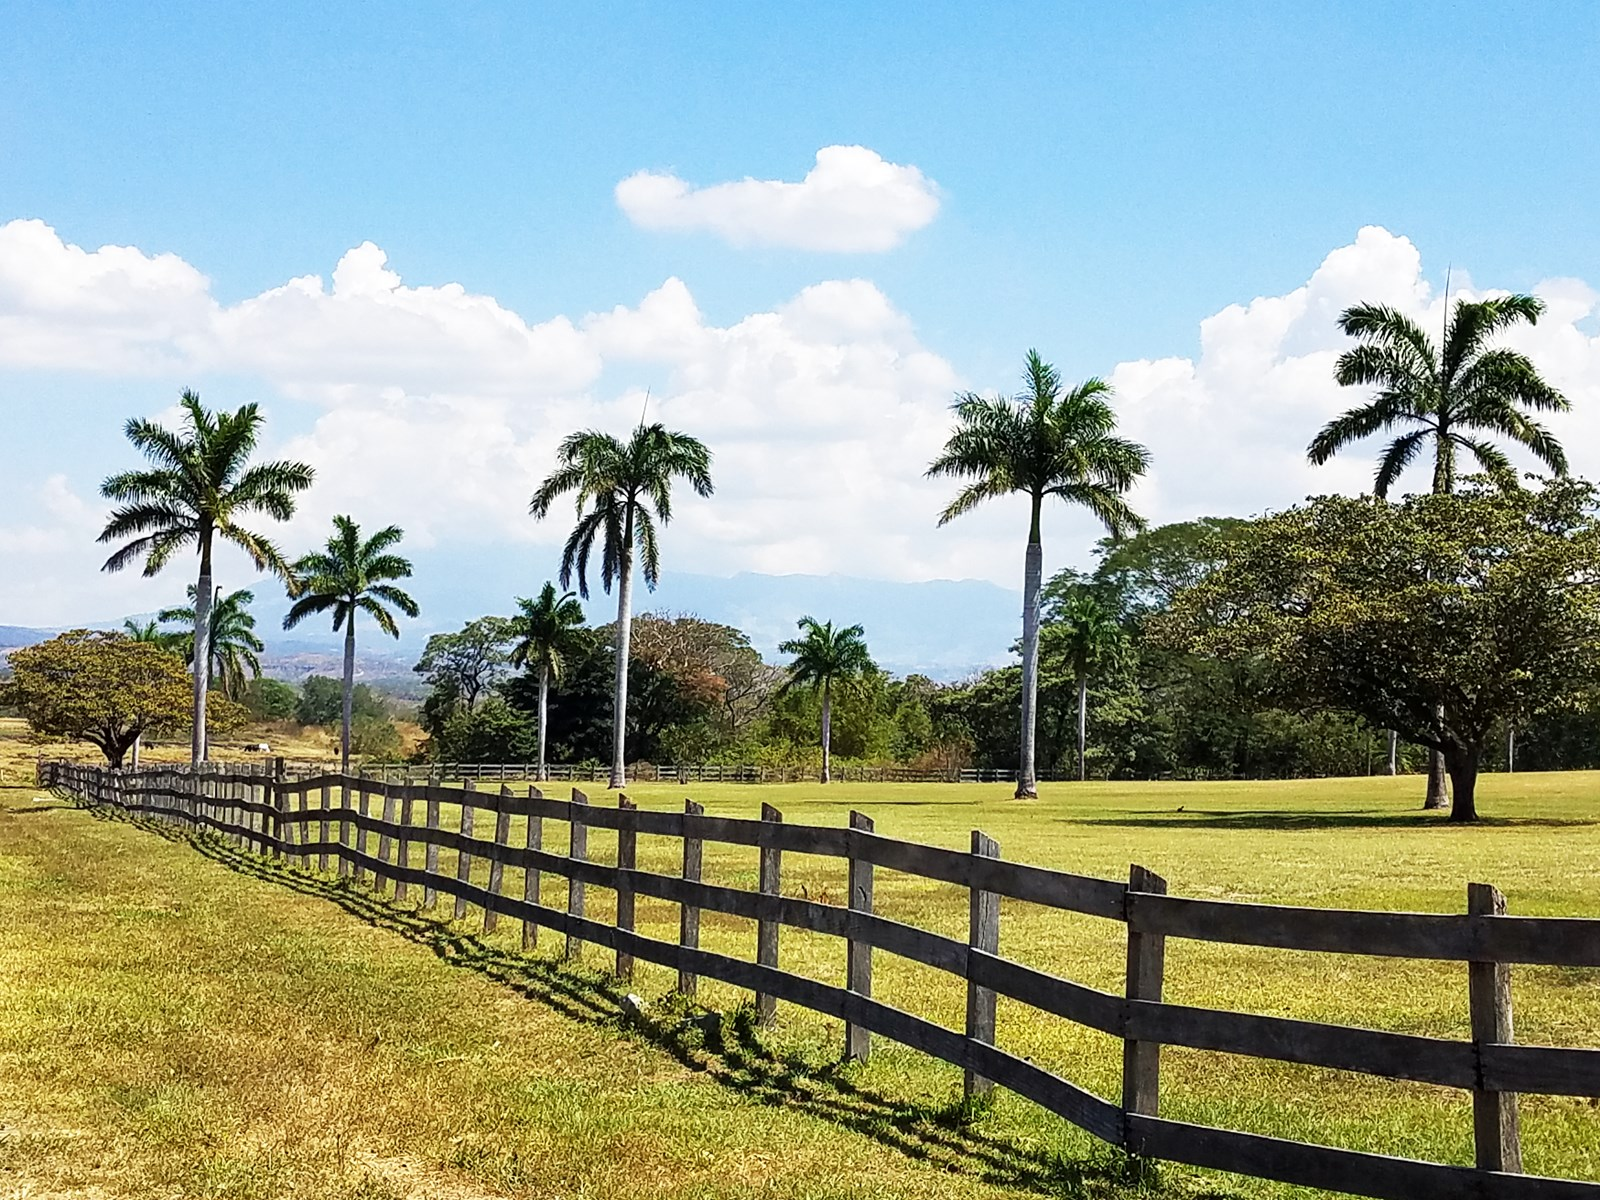 Costa Rica farm/ranch real estate for sale Michael Krieg